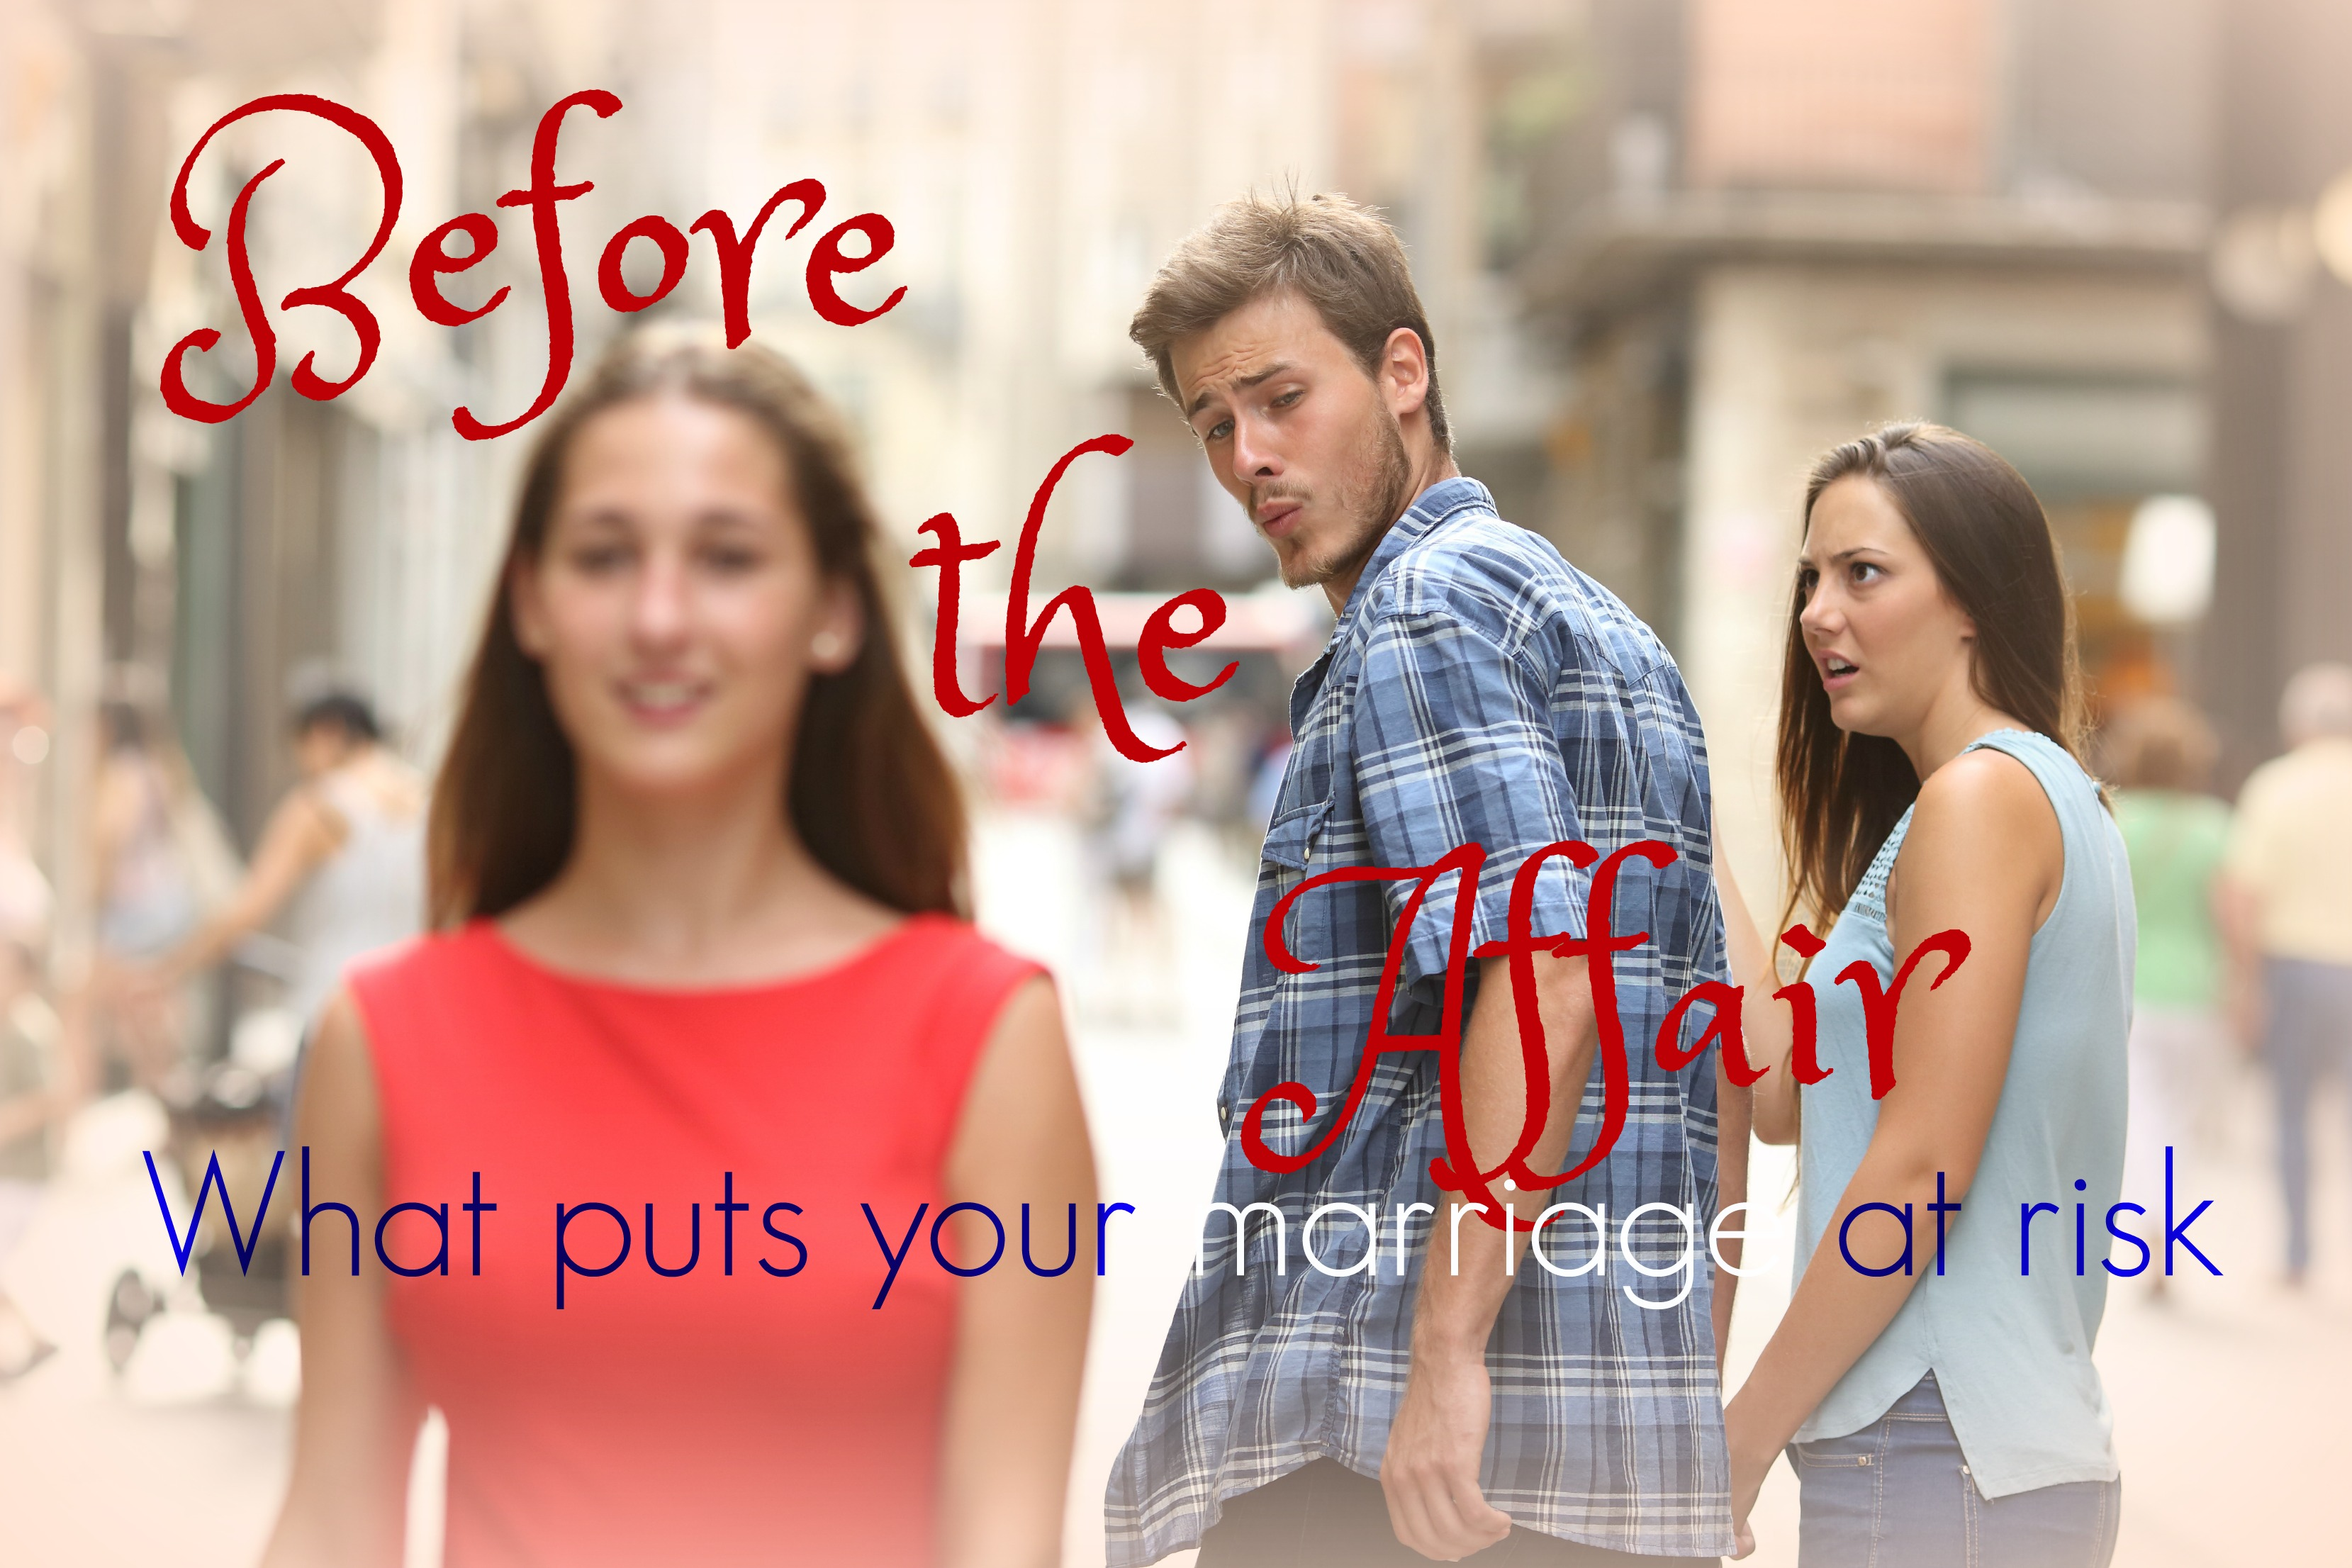 Is having an affair good for your marriage